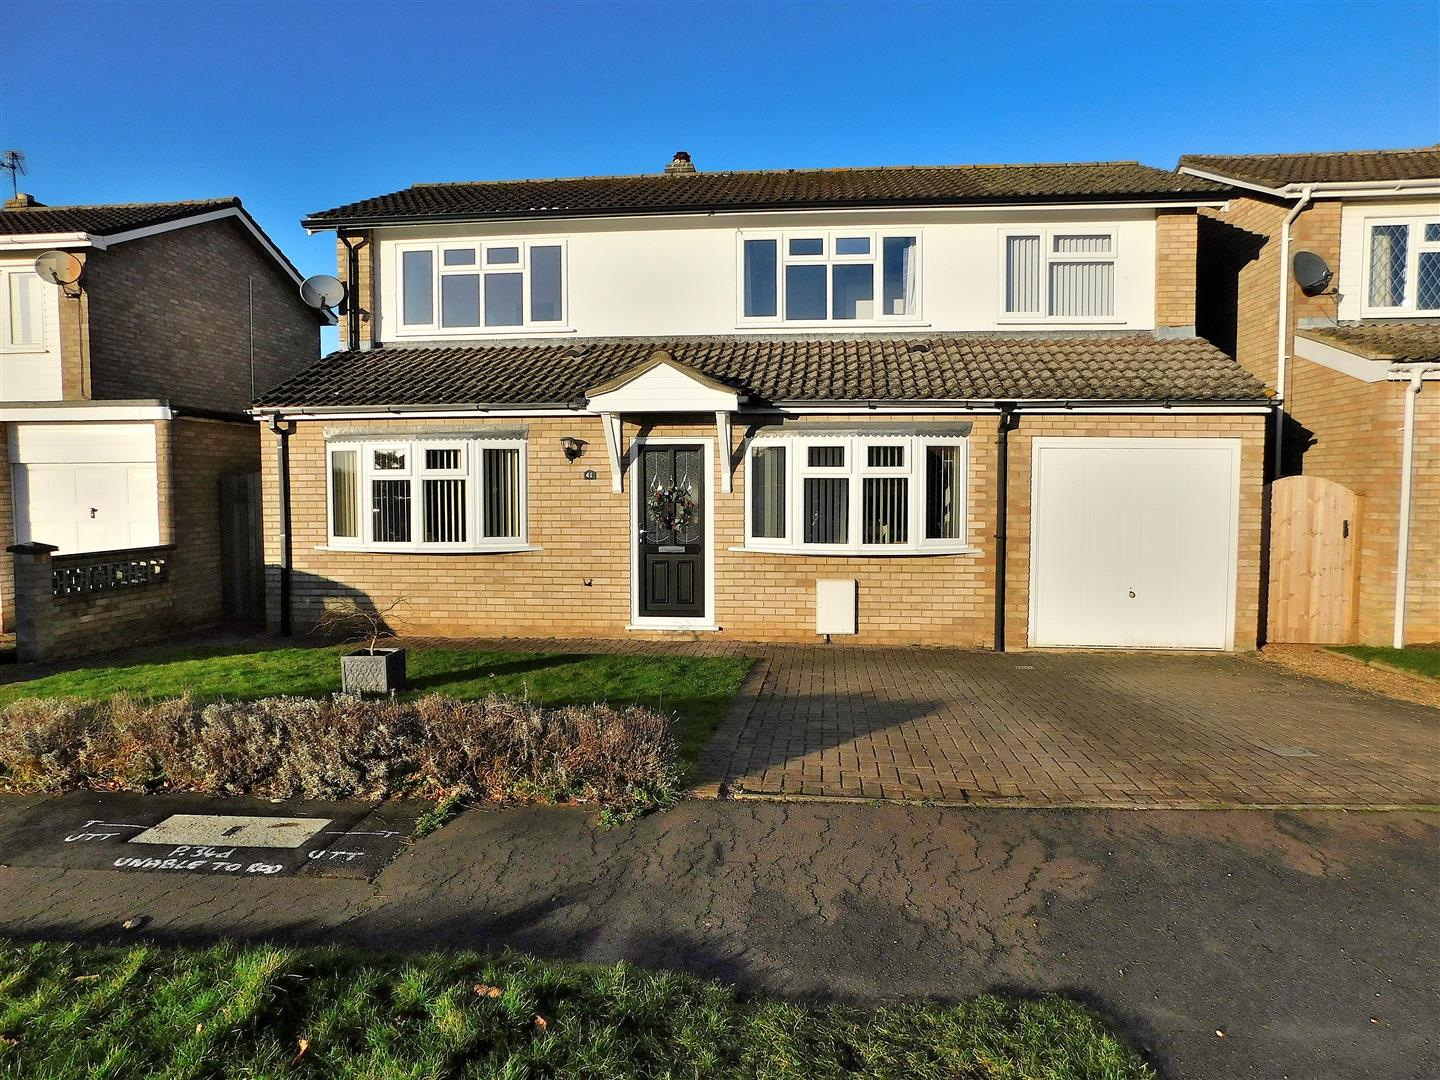 4 bed detached house for sale in King's Lynn, PE31 6NZ - Property Image 1